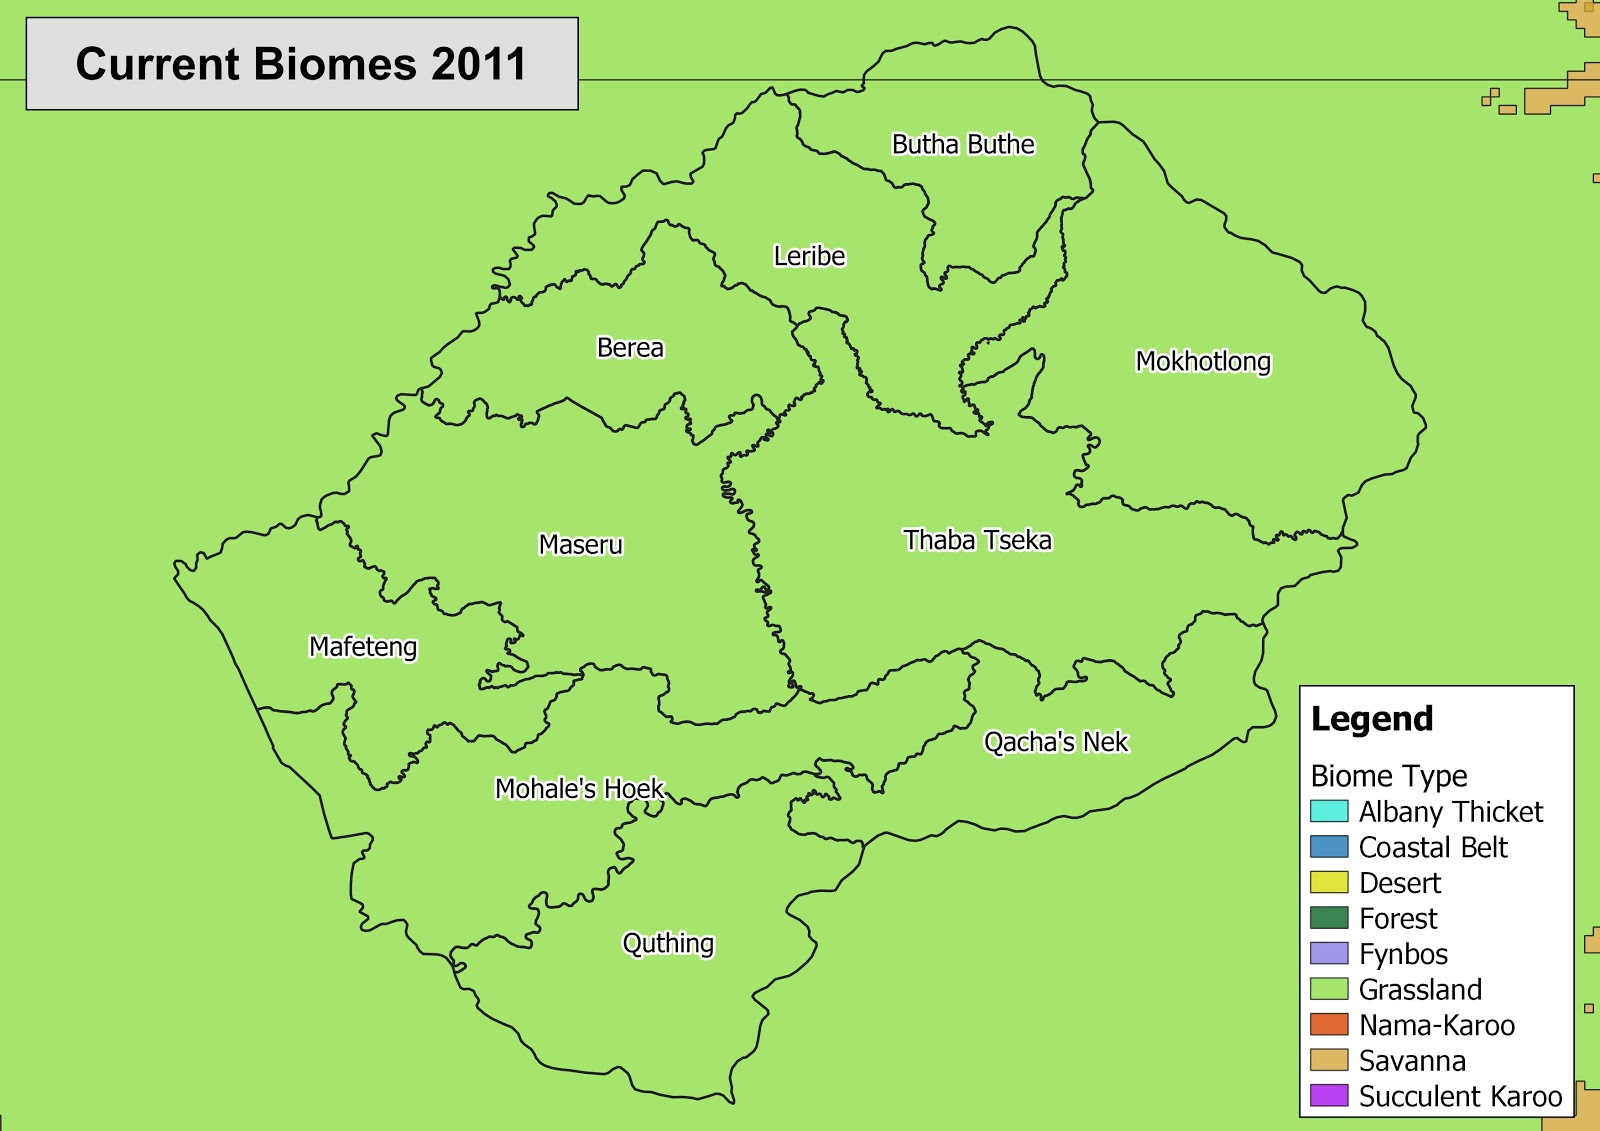 Lesotho currentBiomes 1